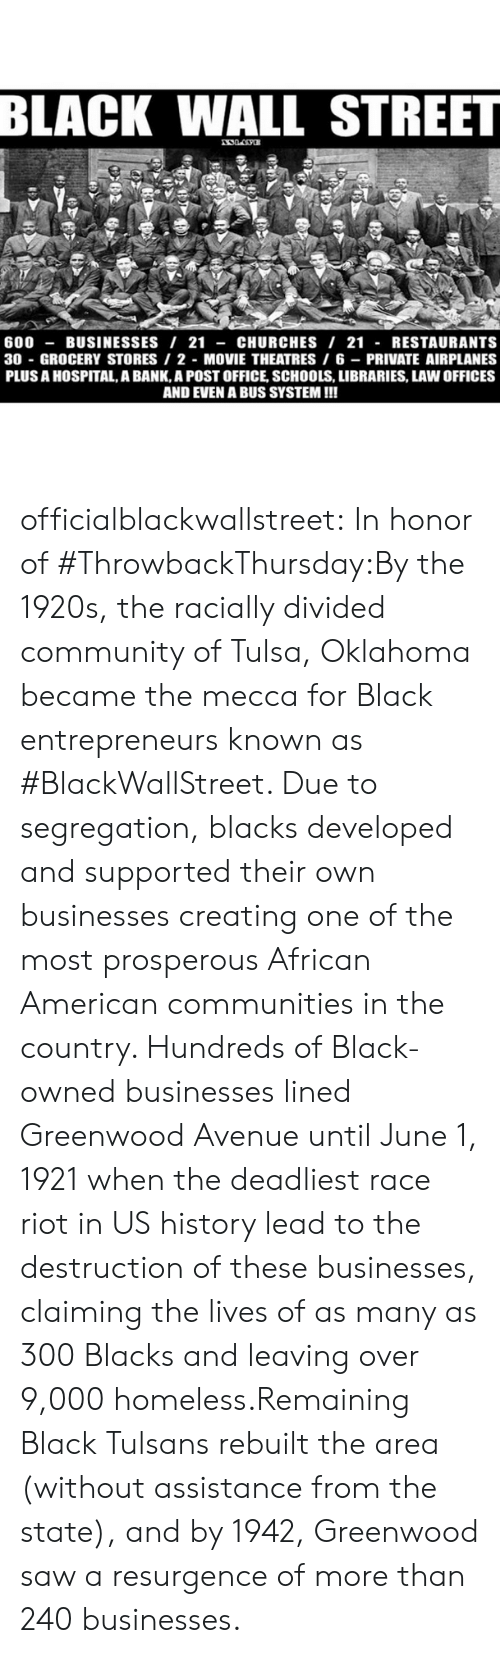 us history: BLACK WALL STREET  600-BUSINESSES/ 21 -CHURCHES I 21 - RESTAURANTS  30 GROCERY STORES 2 MOVIE THEATRES 6 PRIVATE AIRPLANES  PLUS A HOSPITAL, A BANK,A POST OFFICE, SCHOOLS, LIBRARIES, LAW OFFICES  AND EVEN A BUS SYSTEM!!! officialblackwallstreet:  In honor of #ThrowbackThursday:By the 1920s, the racially divided community of Tulsa, Oklahoma became the mecca for Black entrepreneurs known as #BlackWallStreet. Due to segregation, blacks developed and supported their own businesses creating one of the most prosperous African American communities in the country. Hundreds of Black-owned businesses lined Greenwood Avenue until June 1, 1921 when the deadliest race riot in US history lead to the destruction of these businesses, claiming the lives of as many as 300 Blacks and leaving over 9,000 homeless.Remaining Black Tulsans rebuilt the area (without assistance from the state), and by 1942, Greenwood saw a resurgence of more than 240 businesses.